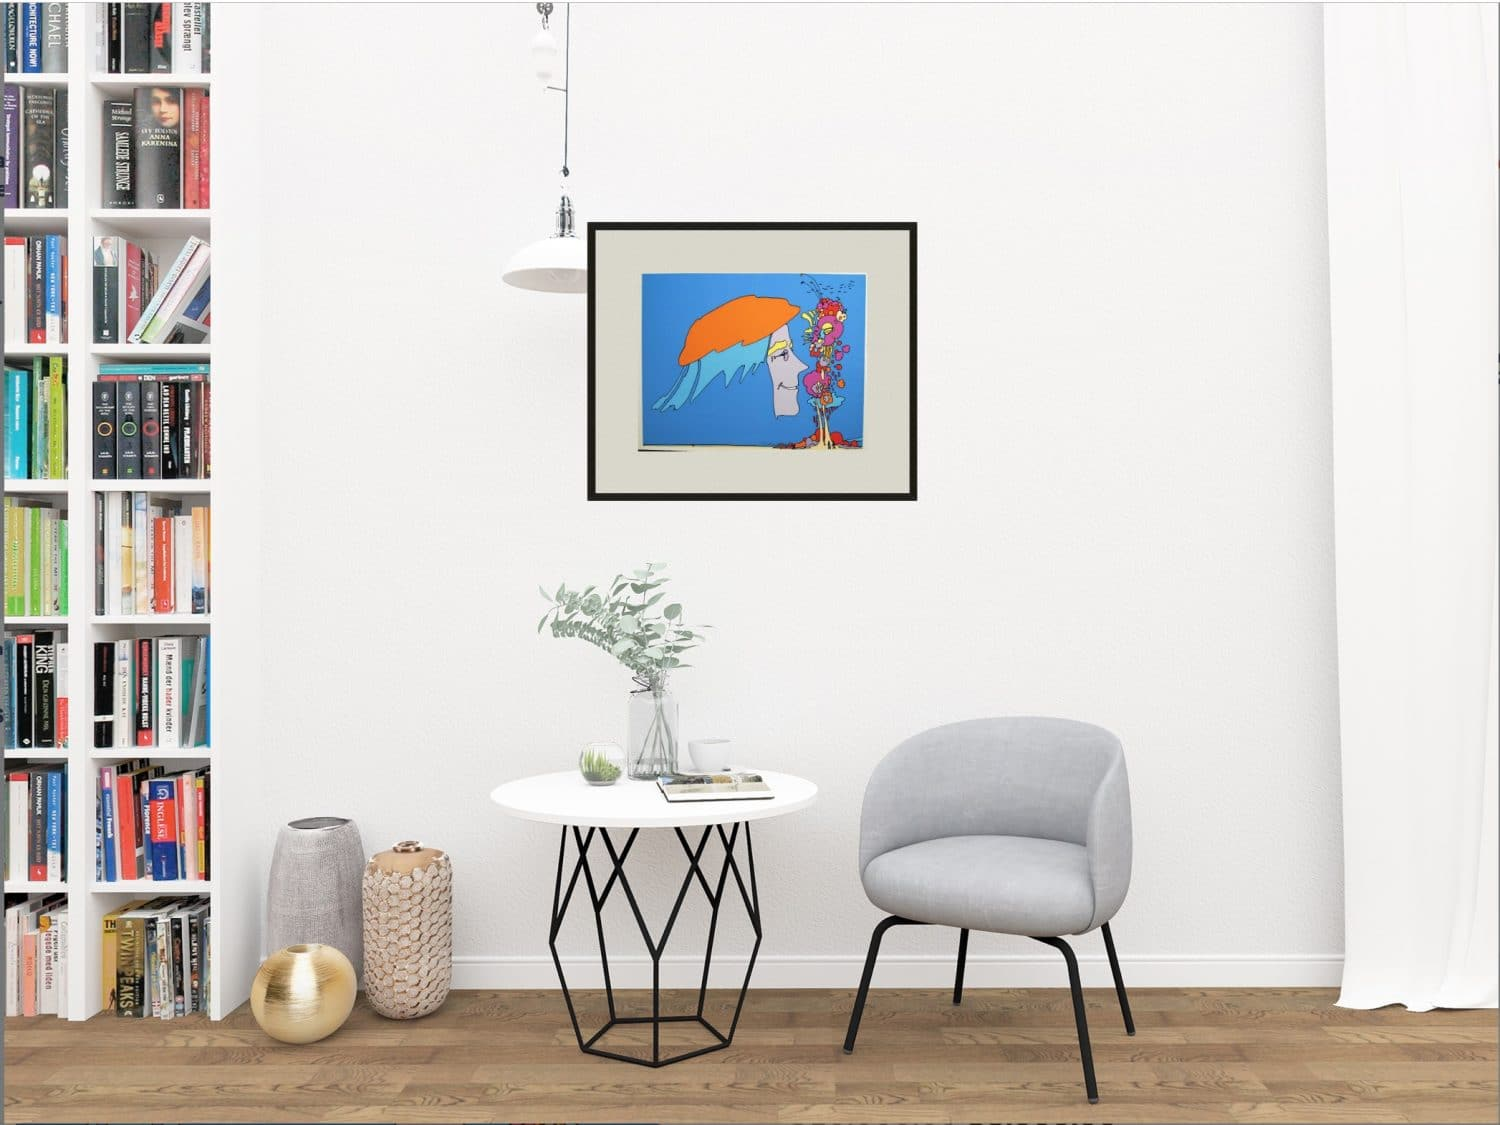 Peter Max framed on wall in modern room